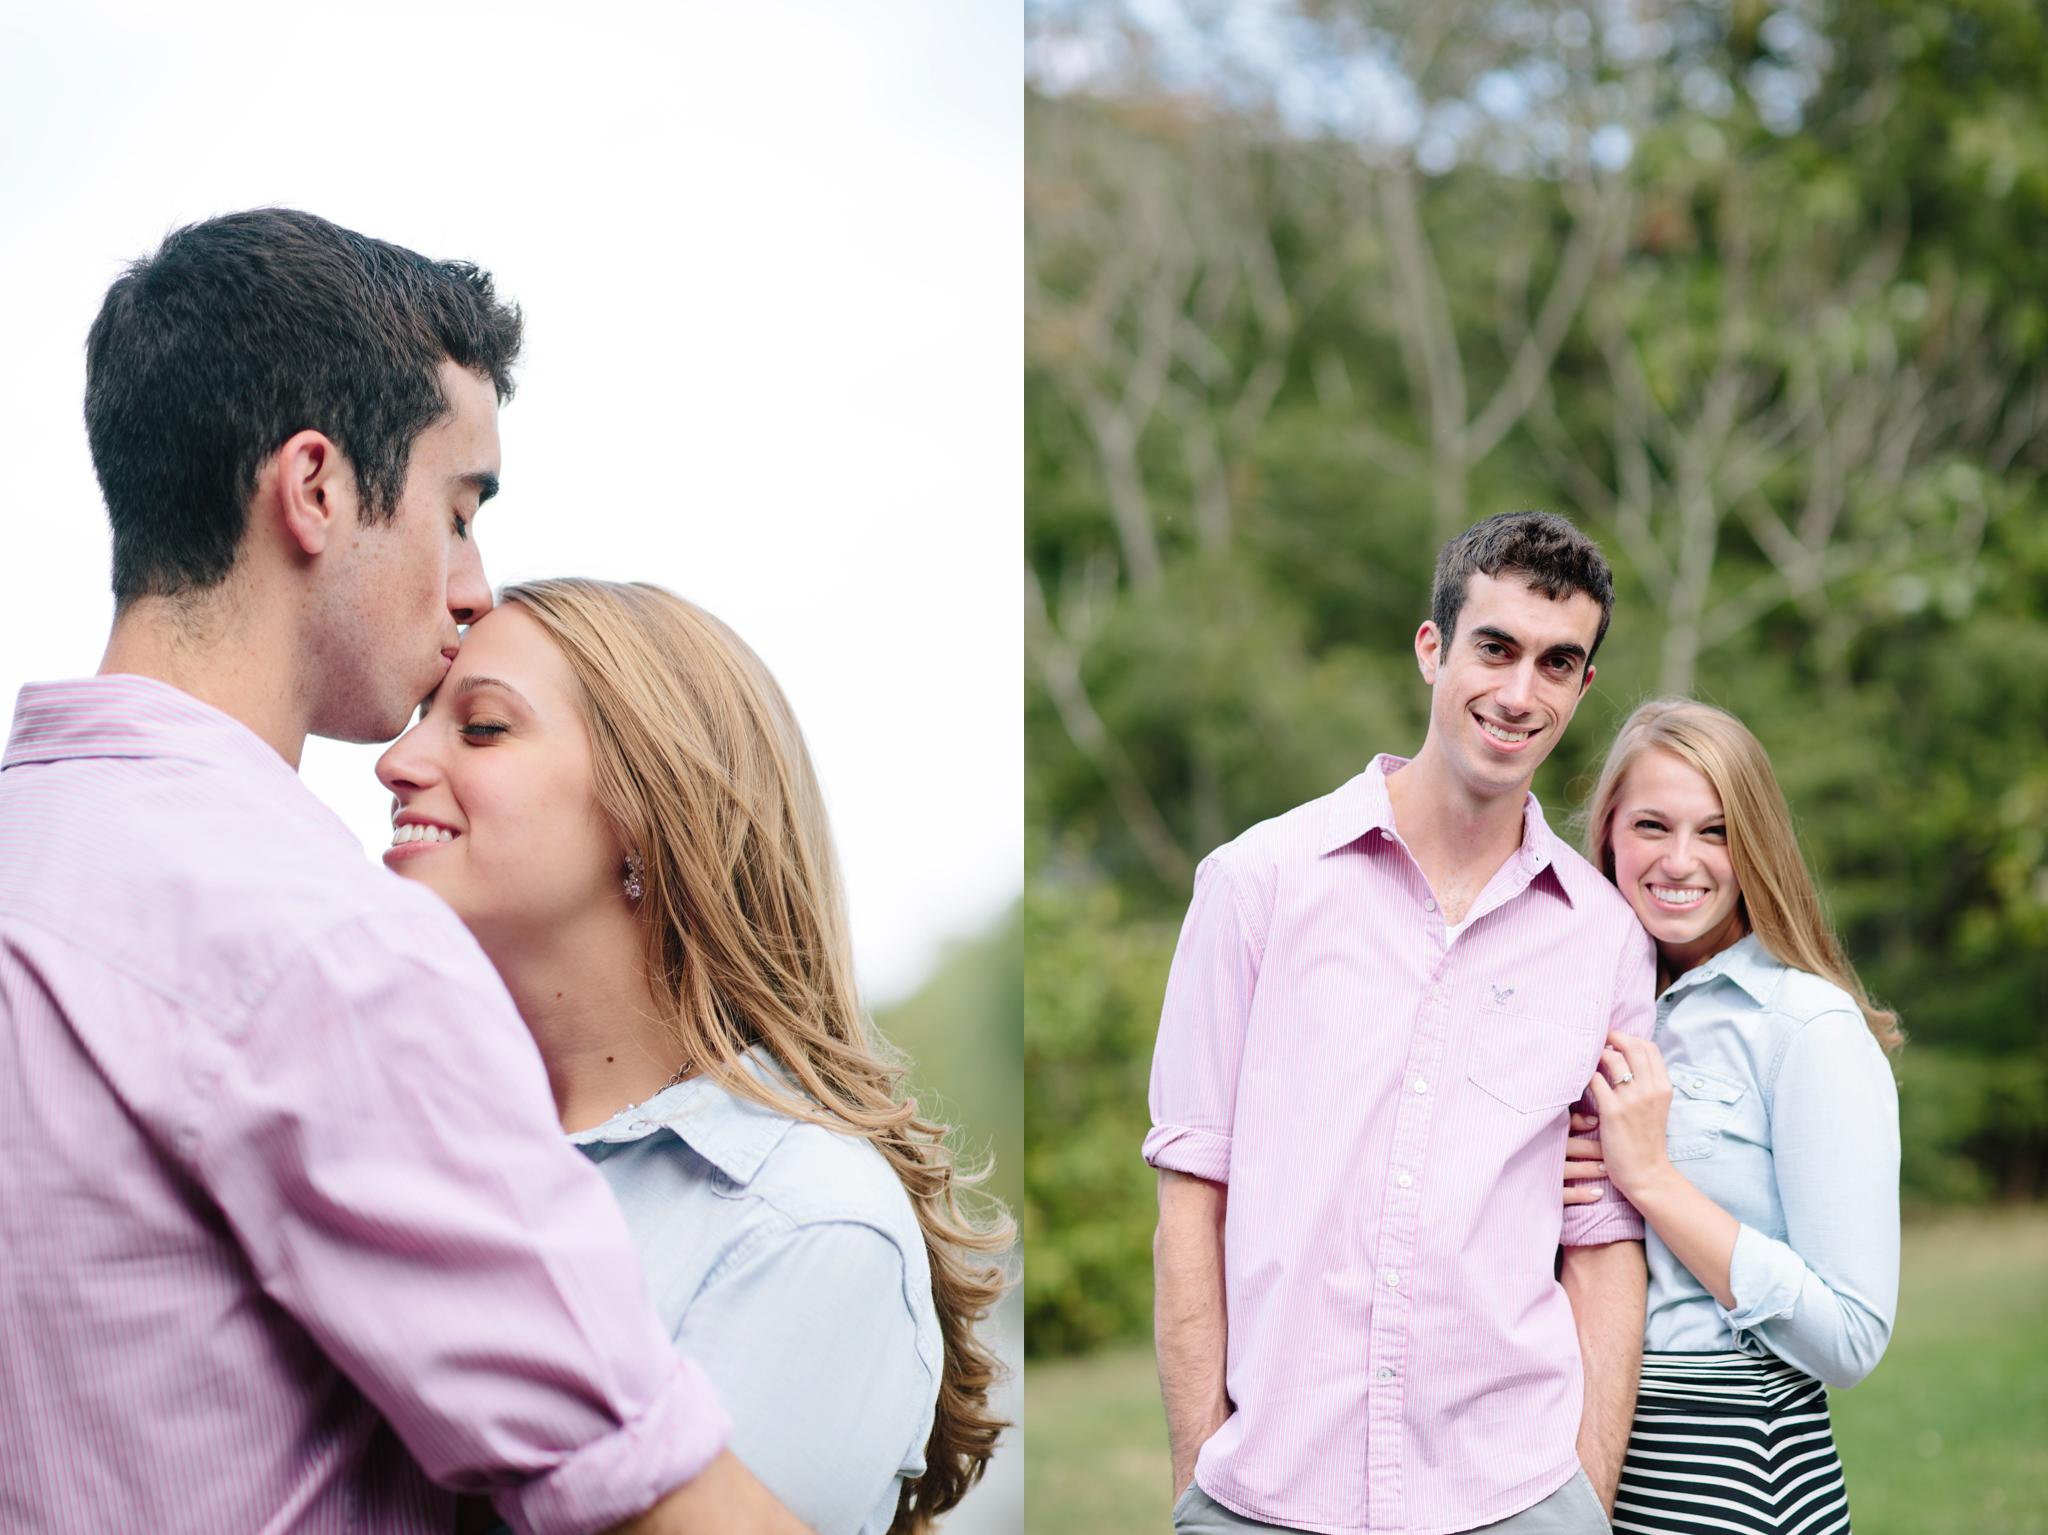 saddle_lake_engagement_session-11.jpg